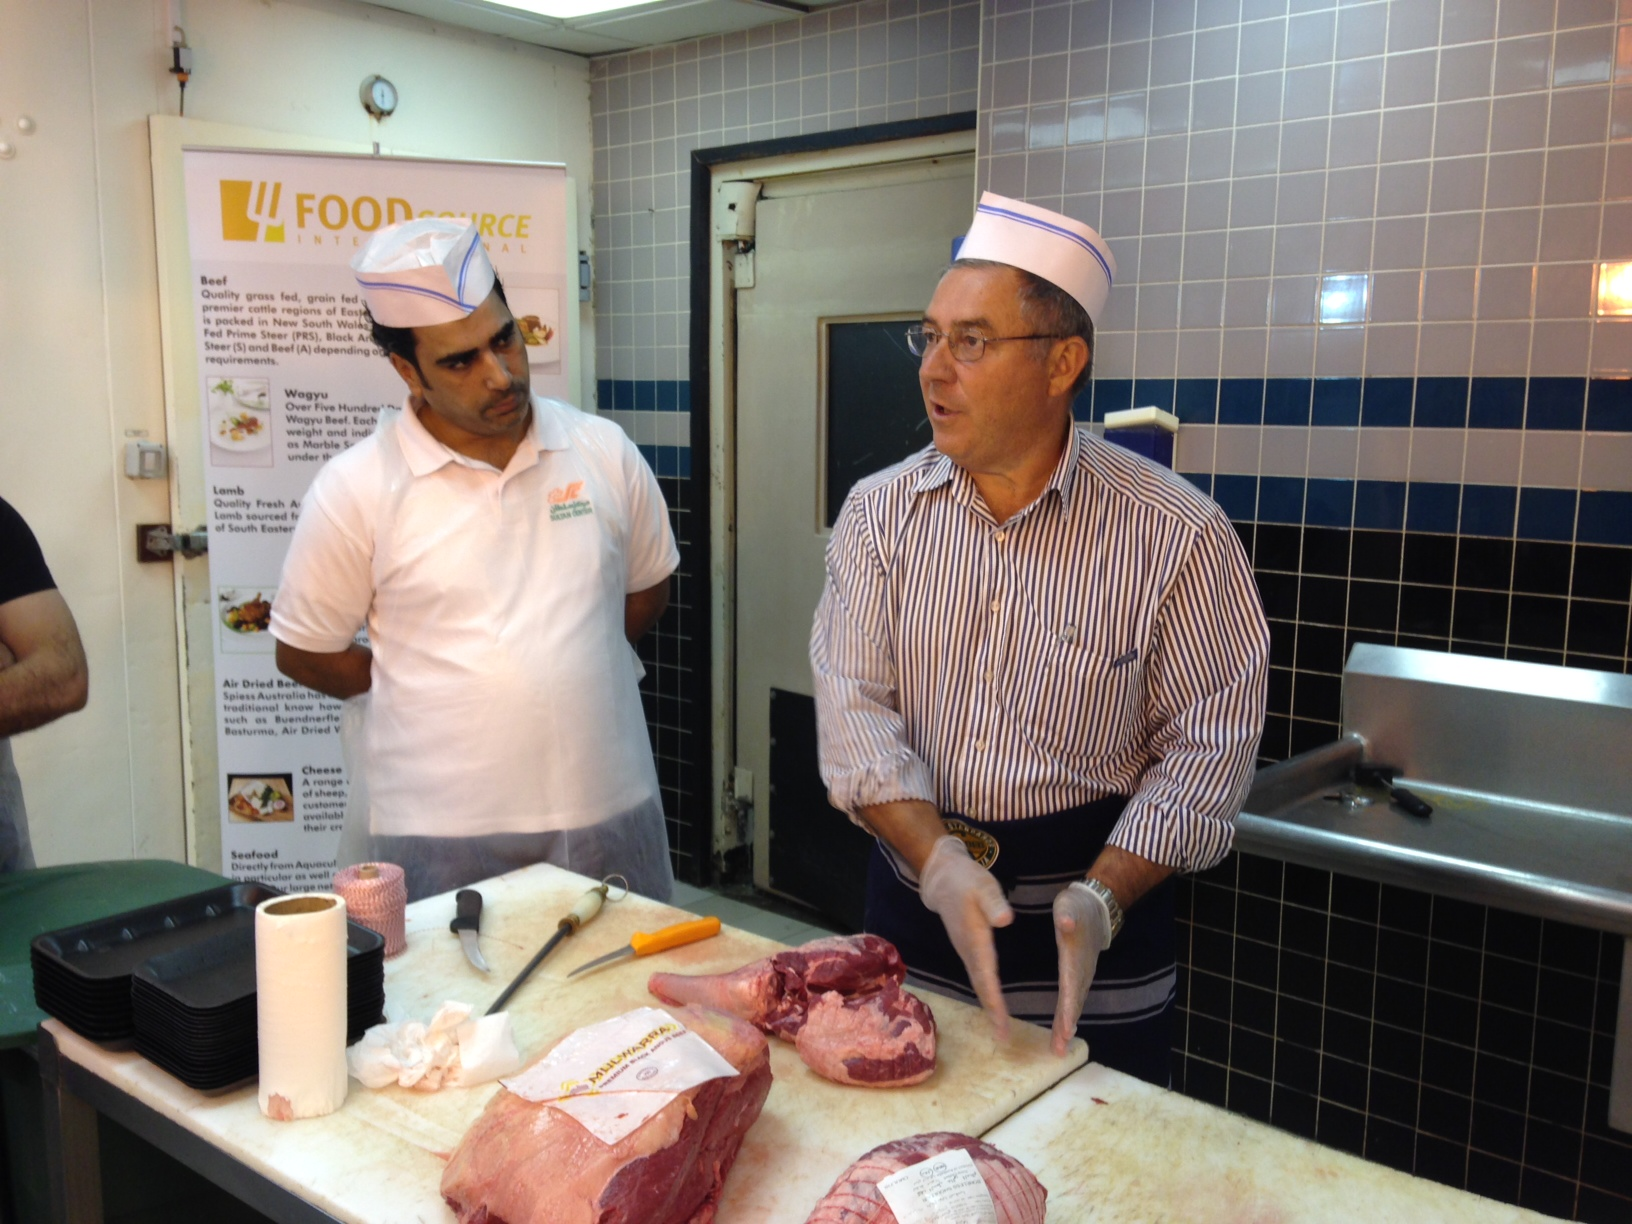 Butchery For Kitchen : MLA BUTCHER TRAINING IN MUSCAT - Food Source International